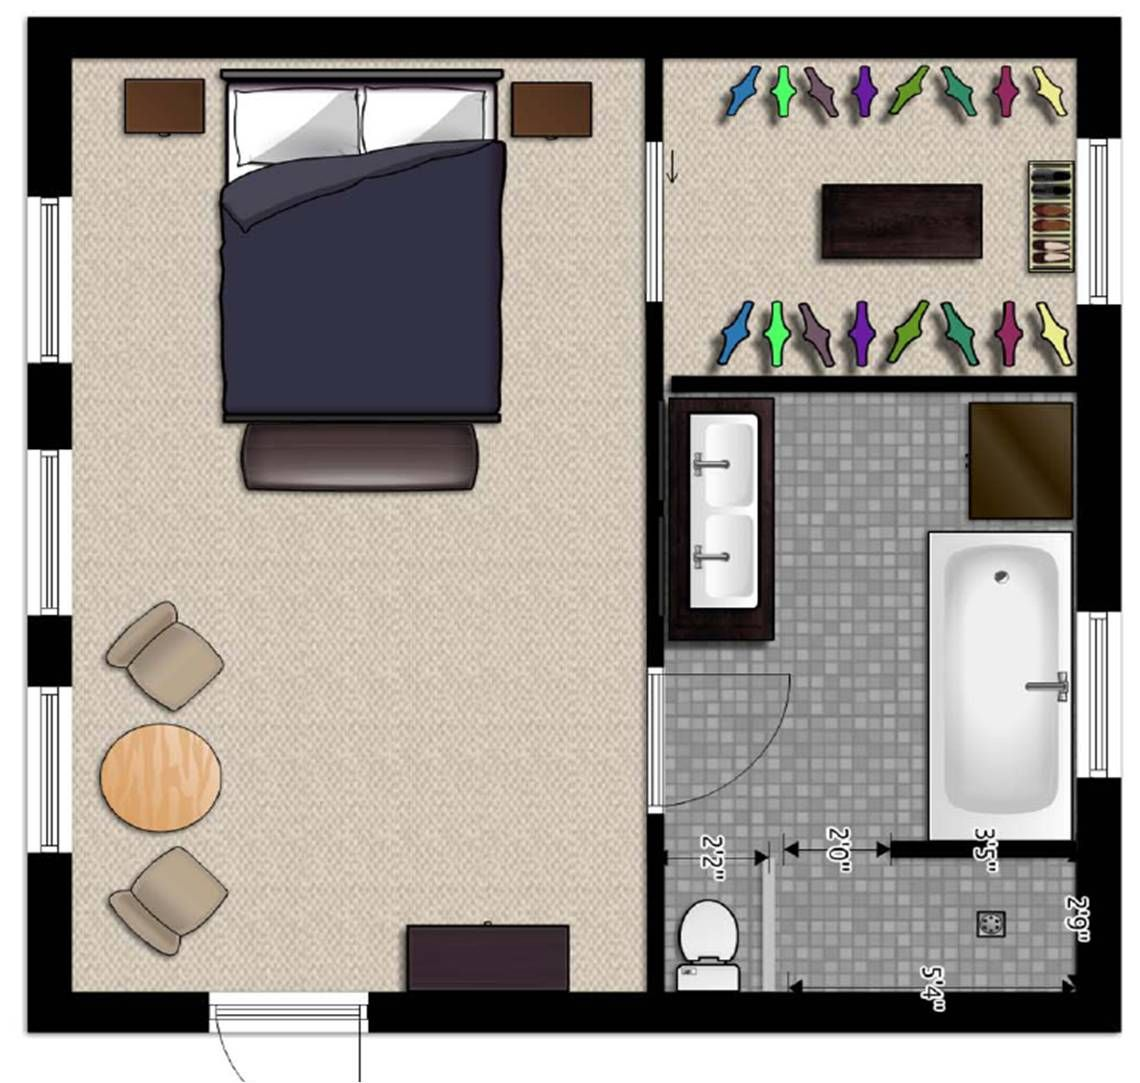 Master Bedroom Layout Ideas master bedroom addition floor plans | and here is the proposed